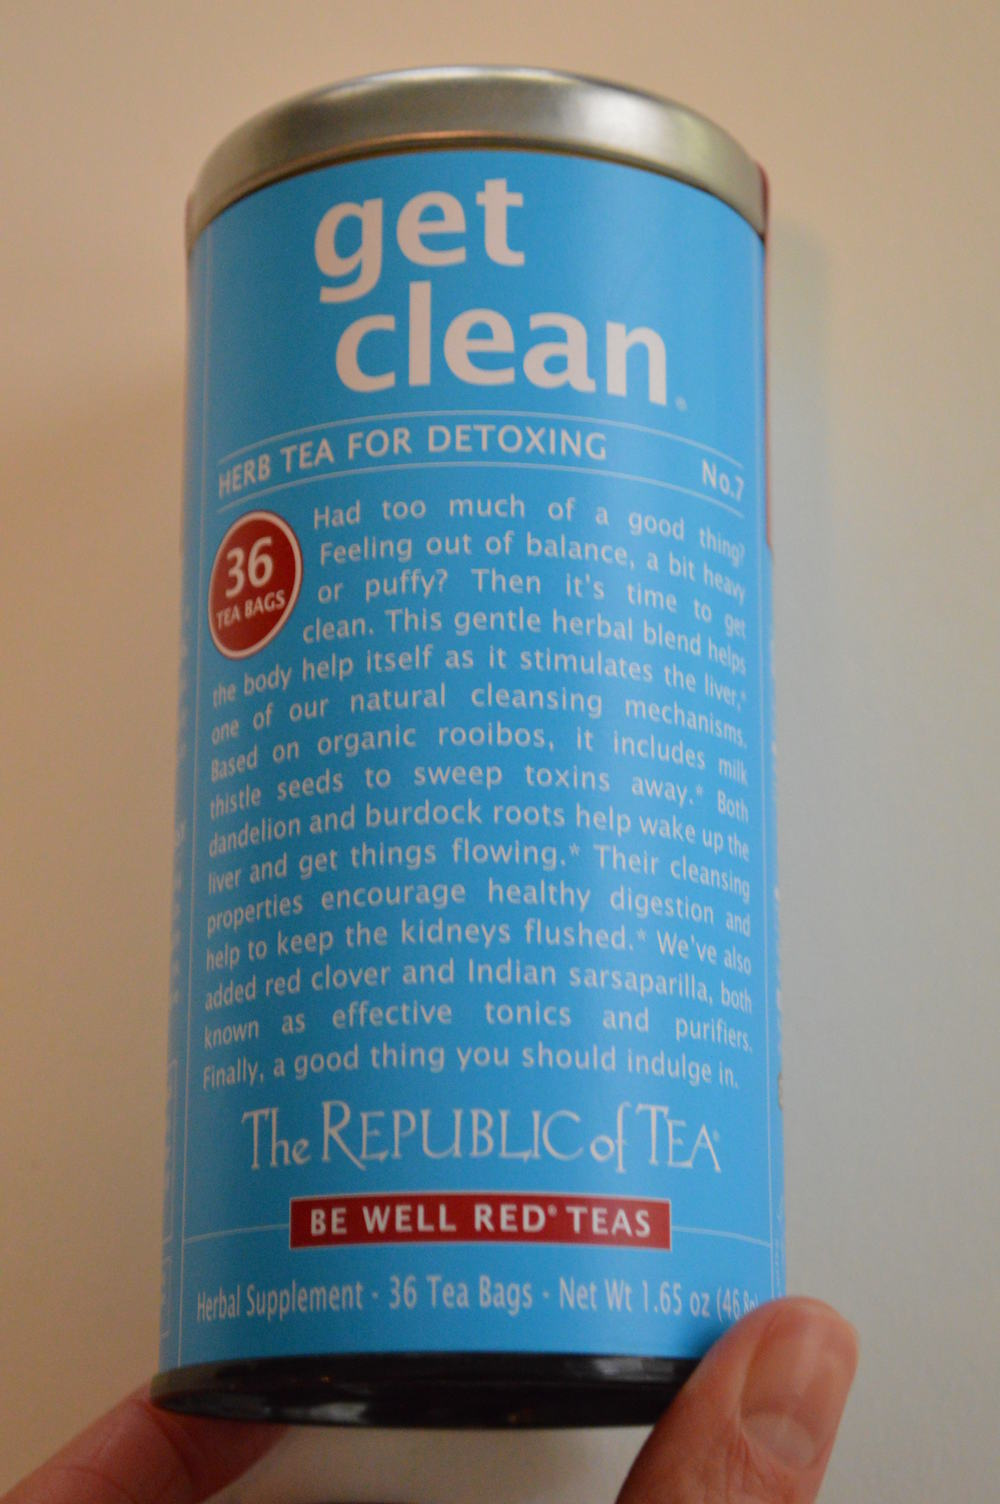 Get Clean - The Republic of Teas